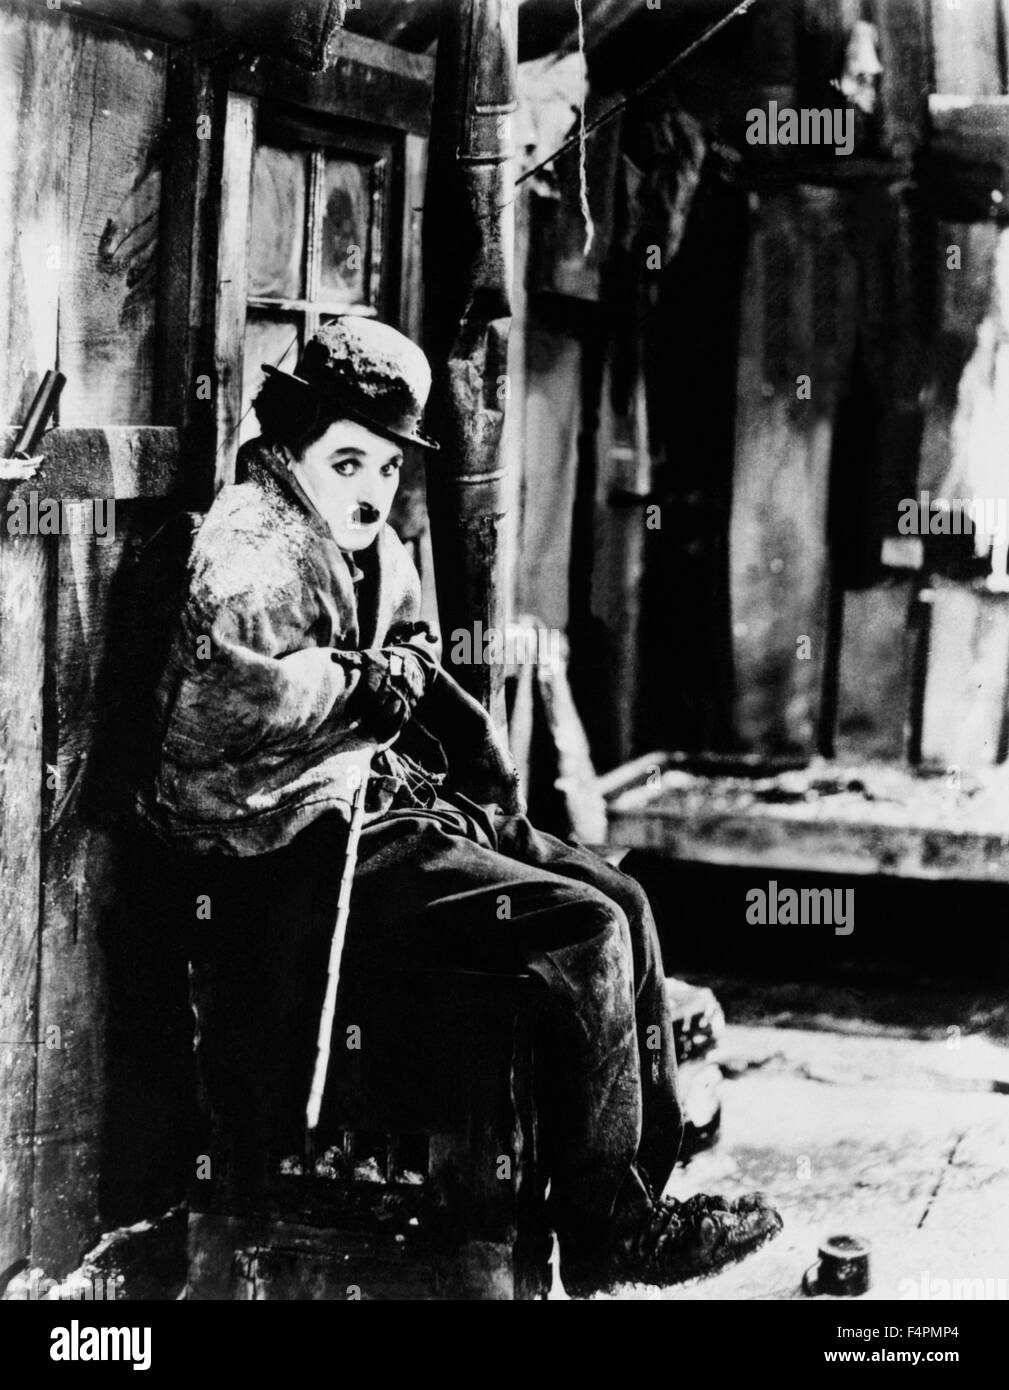 Charlie Chaplin / The Gold Rush / 1925 directed by Charlie Chaplin [United Artists] - Stock Image